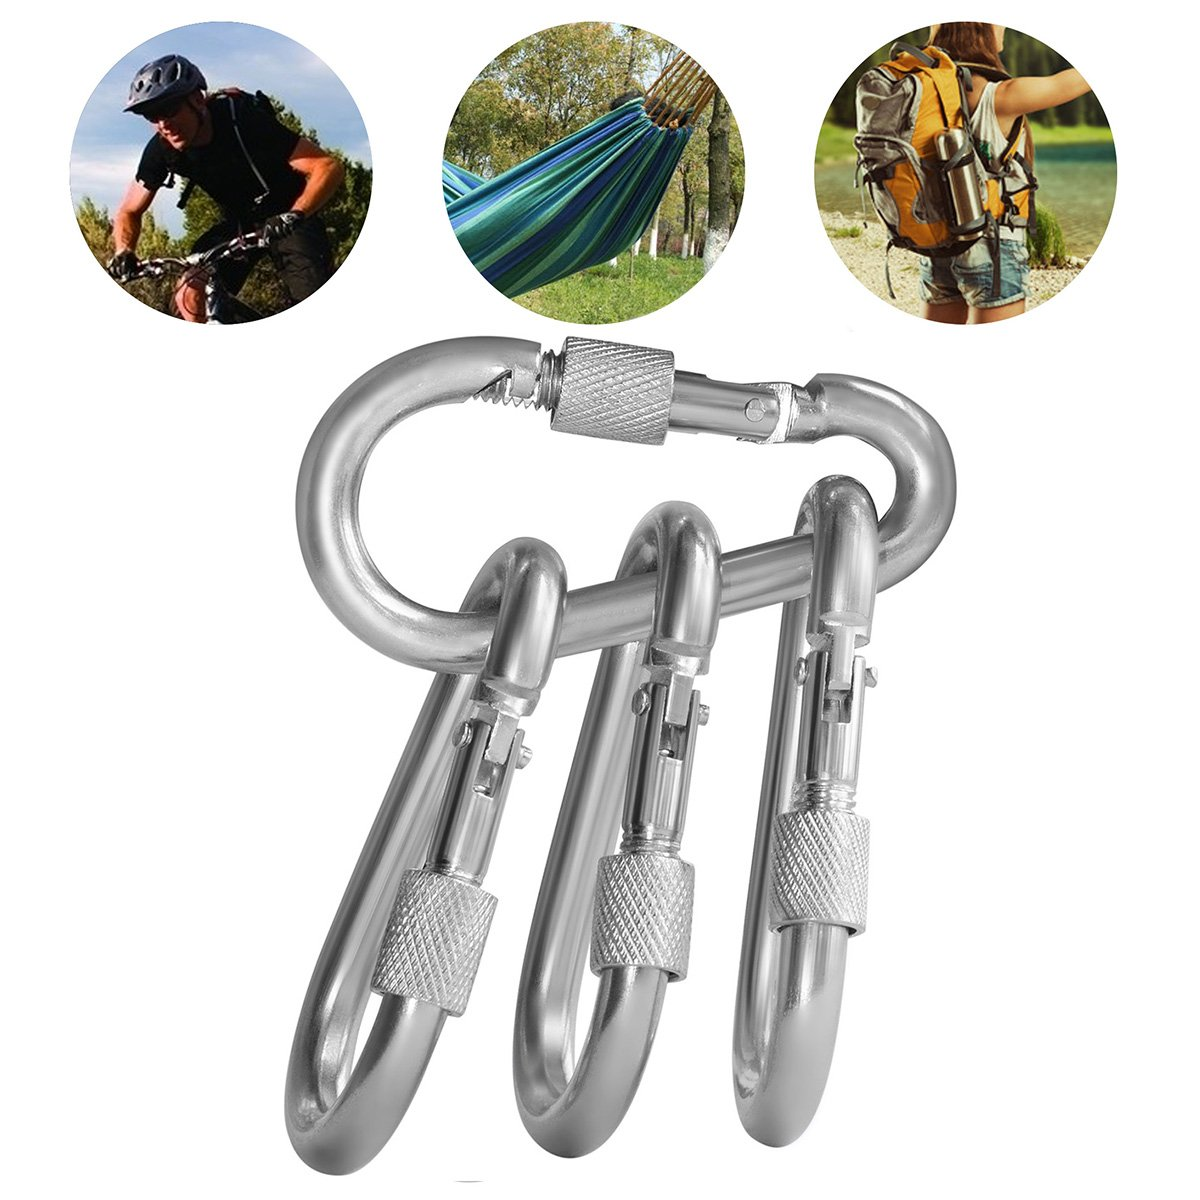 BT-245S Excellent Climbing Steel Electric Galvanized Climbing Carabiner 7mm With Screw Steel Spring Carabiner Snap Hook